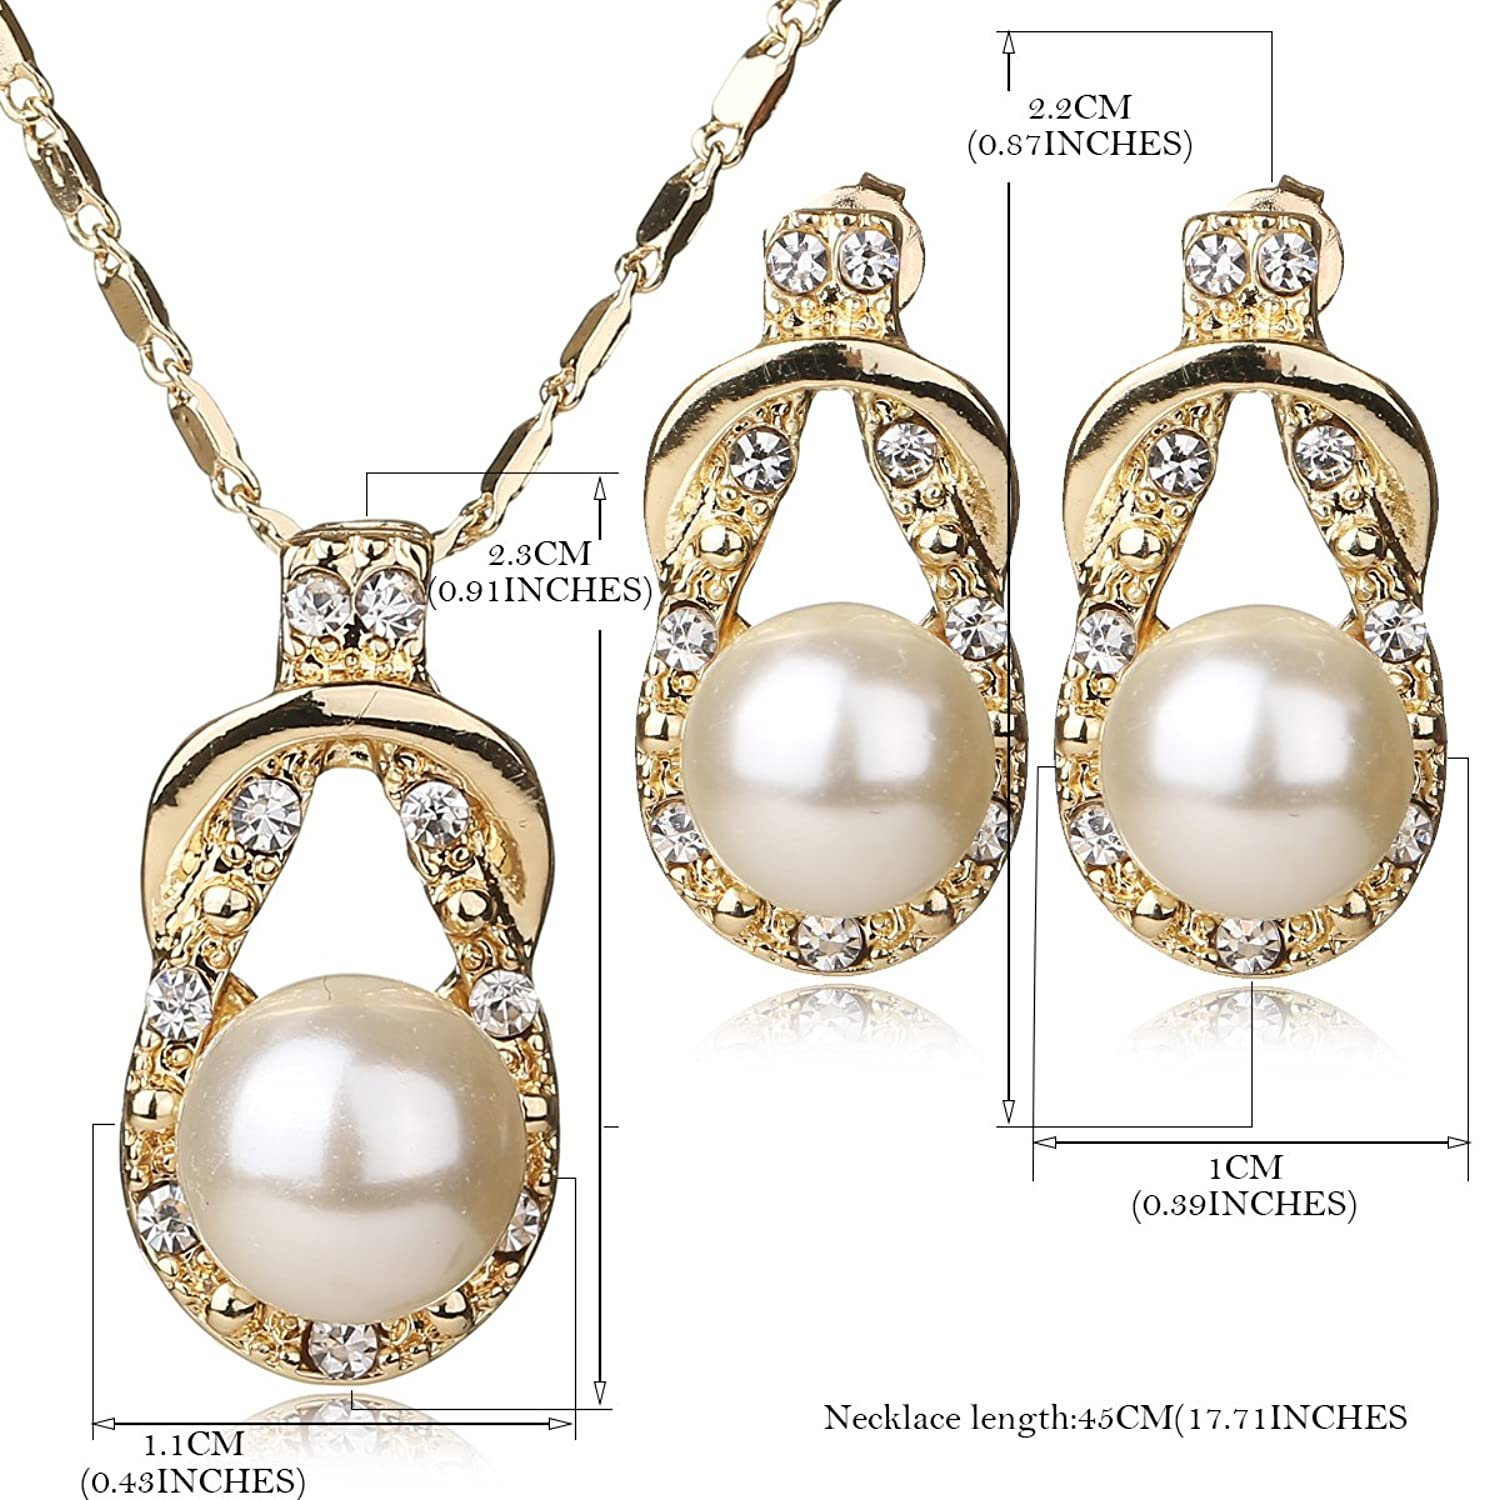 4fb26f54f7 Amazon.com: IFFURMON Fashion Charm Women Jewelry Sets Imitation Pearl  Statement Pendant Necklace Earrings Set: Jewelry